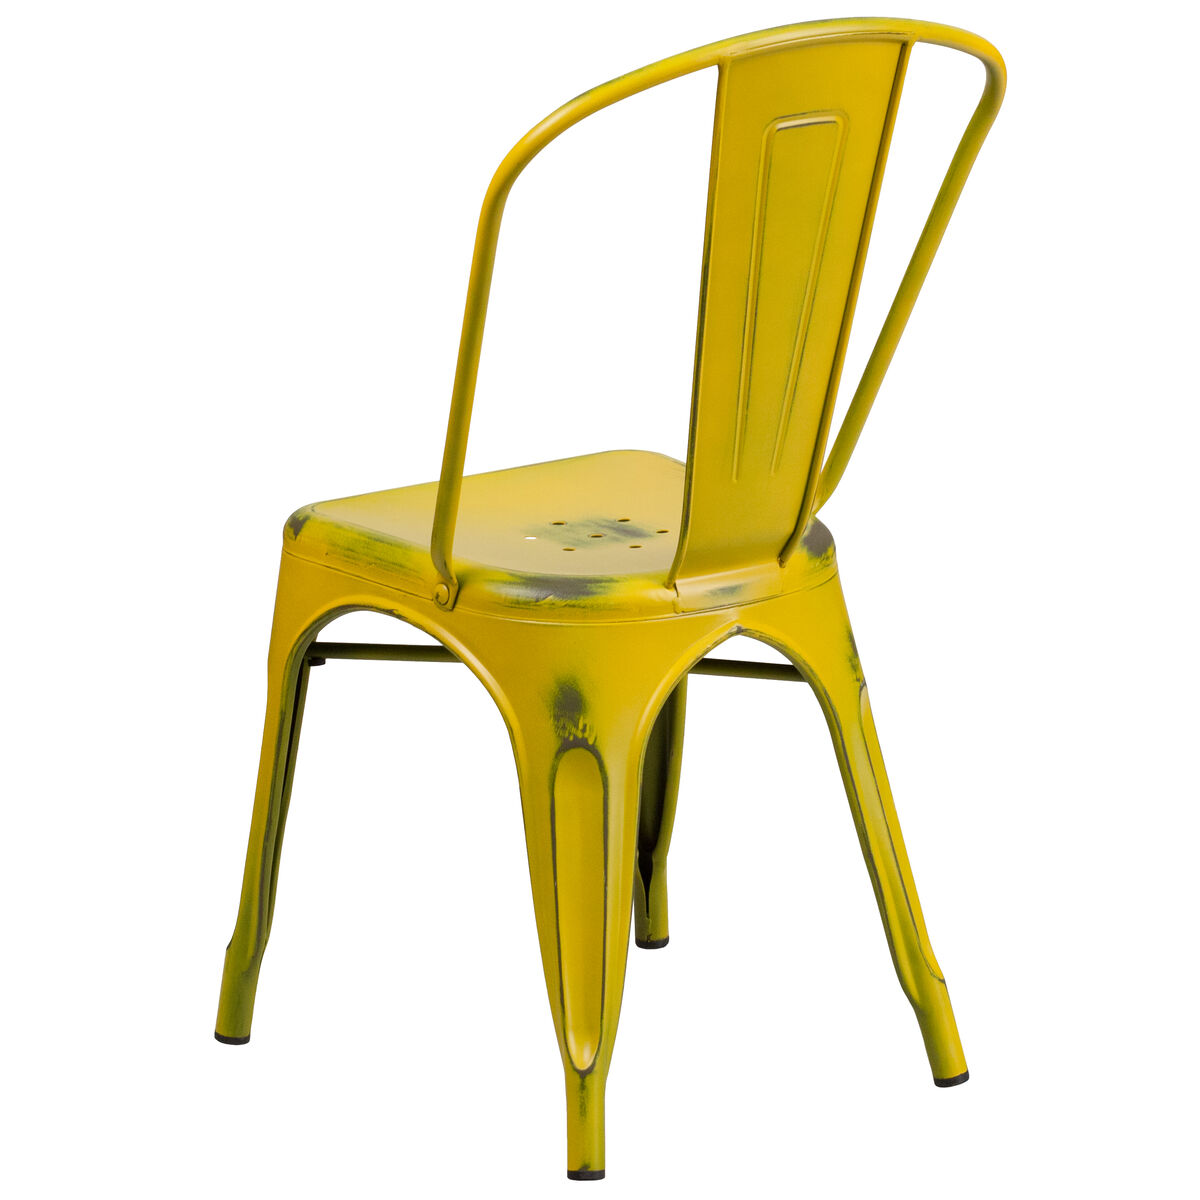 Our distressed yellow metal indoor outdoor stackable chair is on sale now